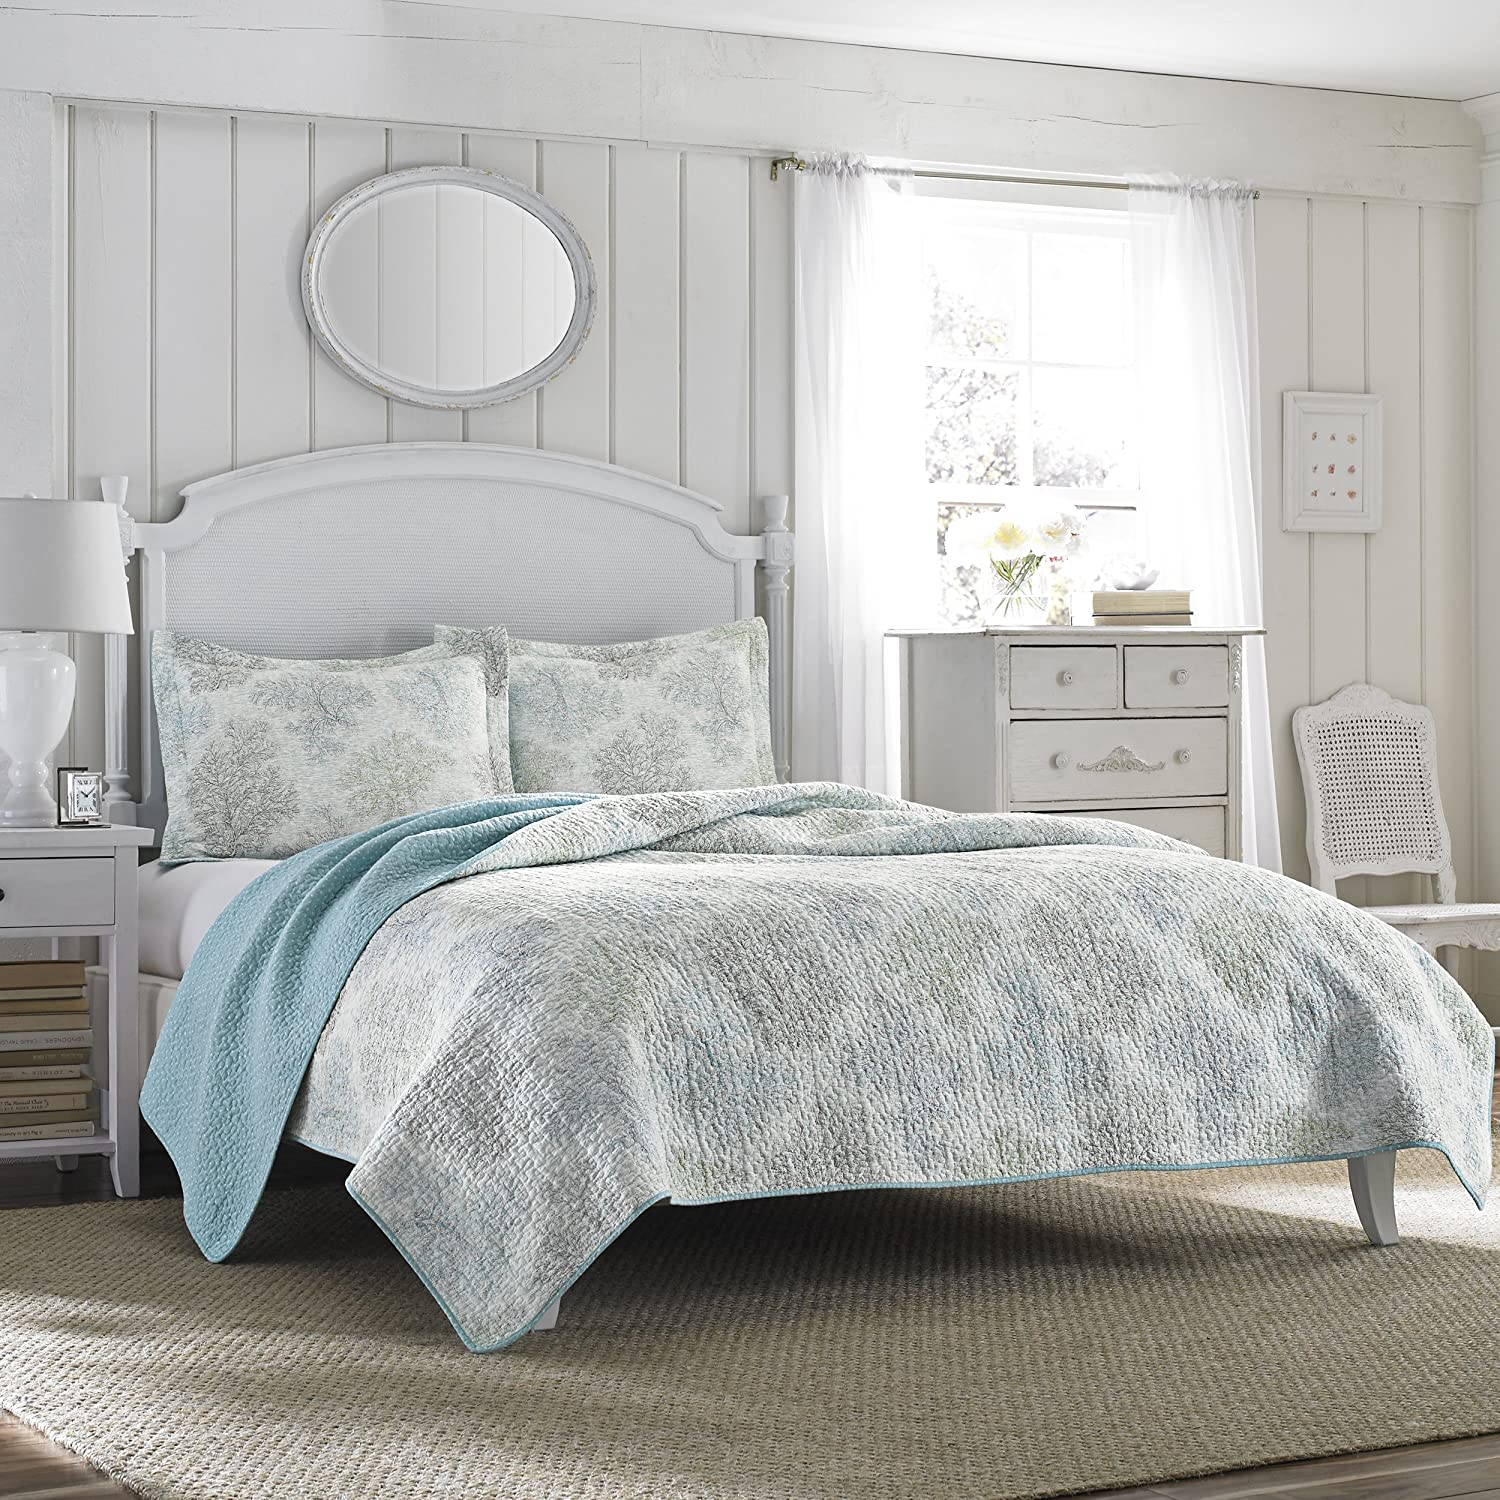 Amazon.com: Laura Ashley Saltwater Reversible Quilt Set, King ... : laura ashley king quilt - Adamdwight.com